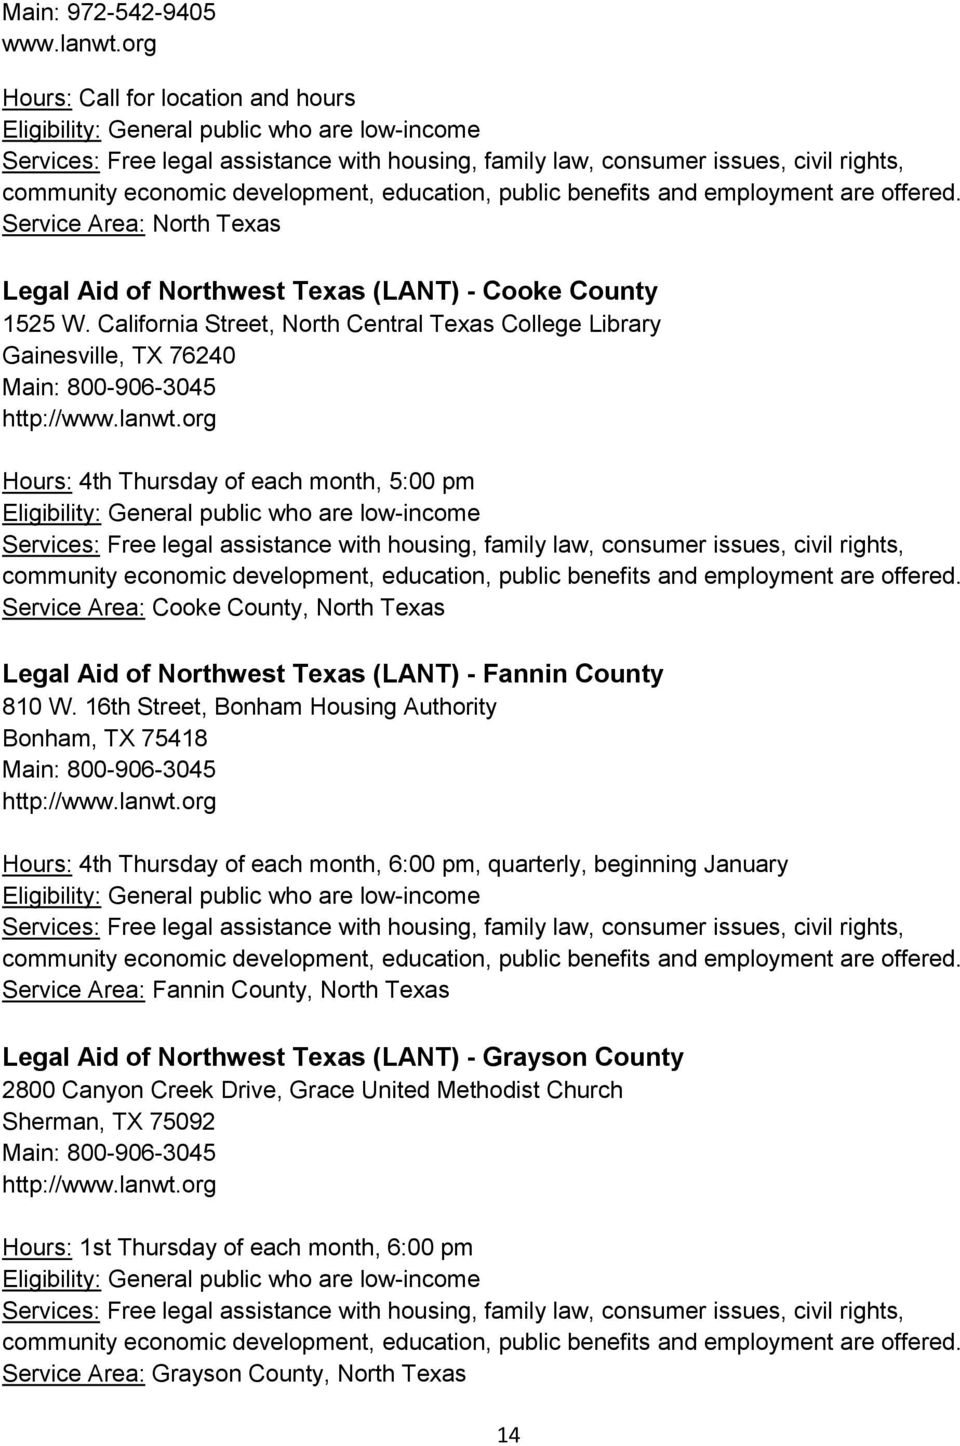 employment re fered. Service re: North Texs Legl id Northwest Texs (LNT) - Cooke County 1525 W. Cliforni Street, North Centrl Texs College Librry Gesville, TX 60 M: 800-6-3045 http://www.lnwt.